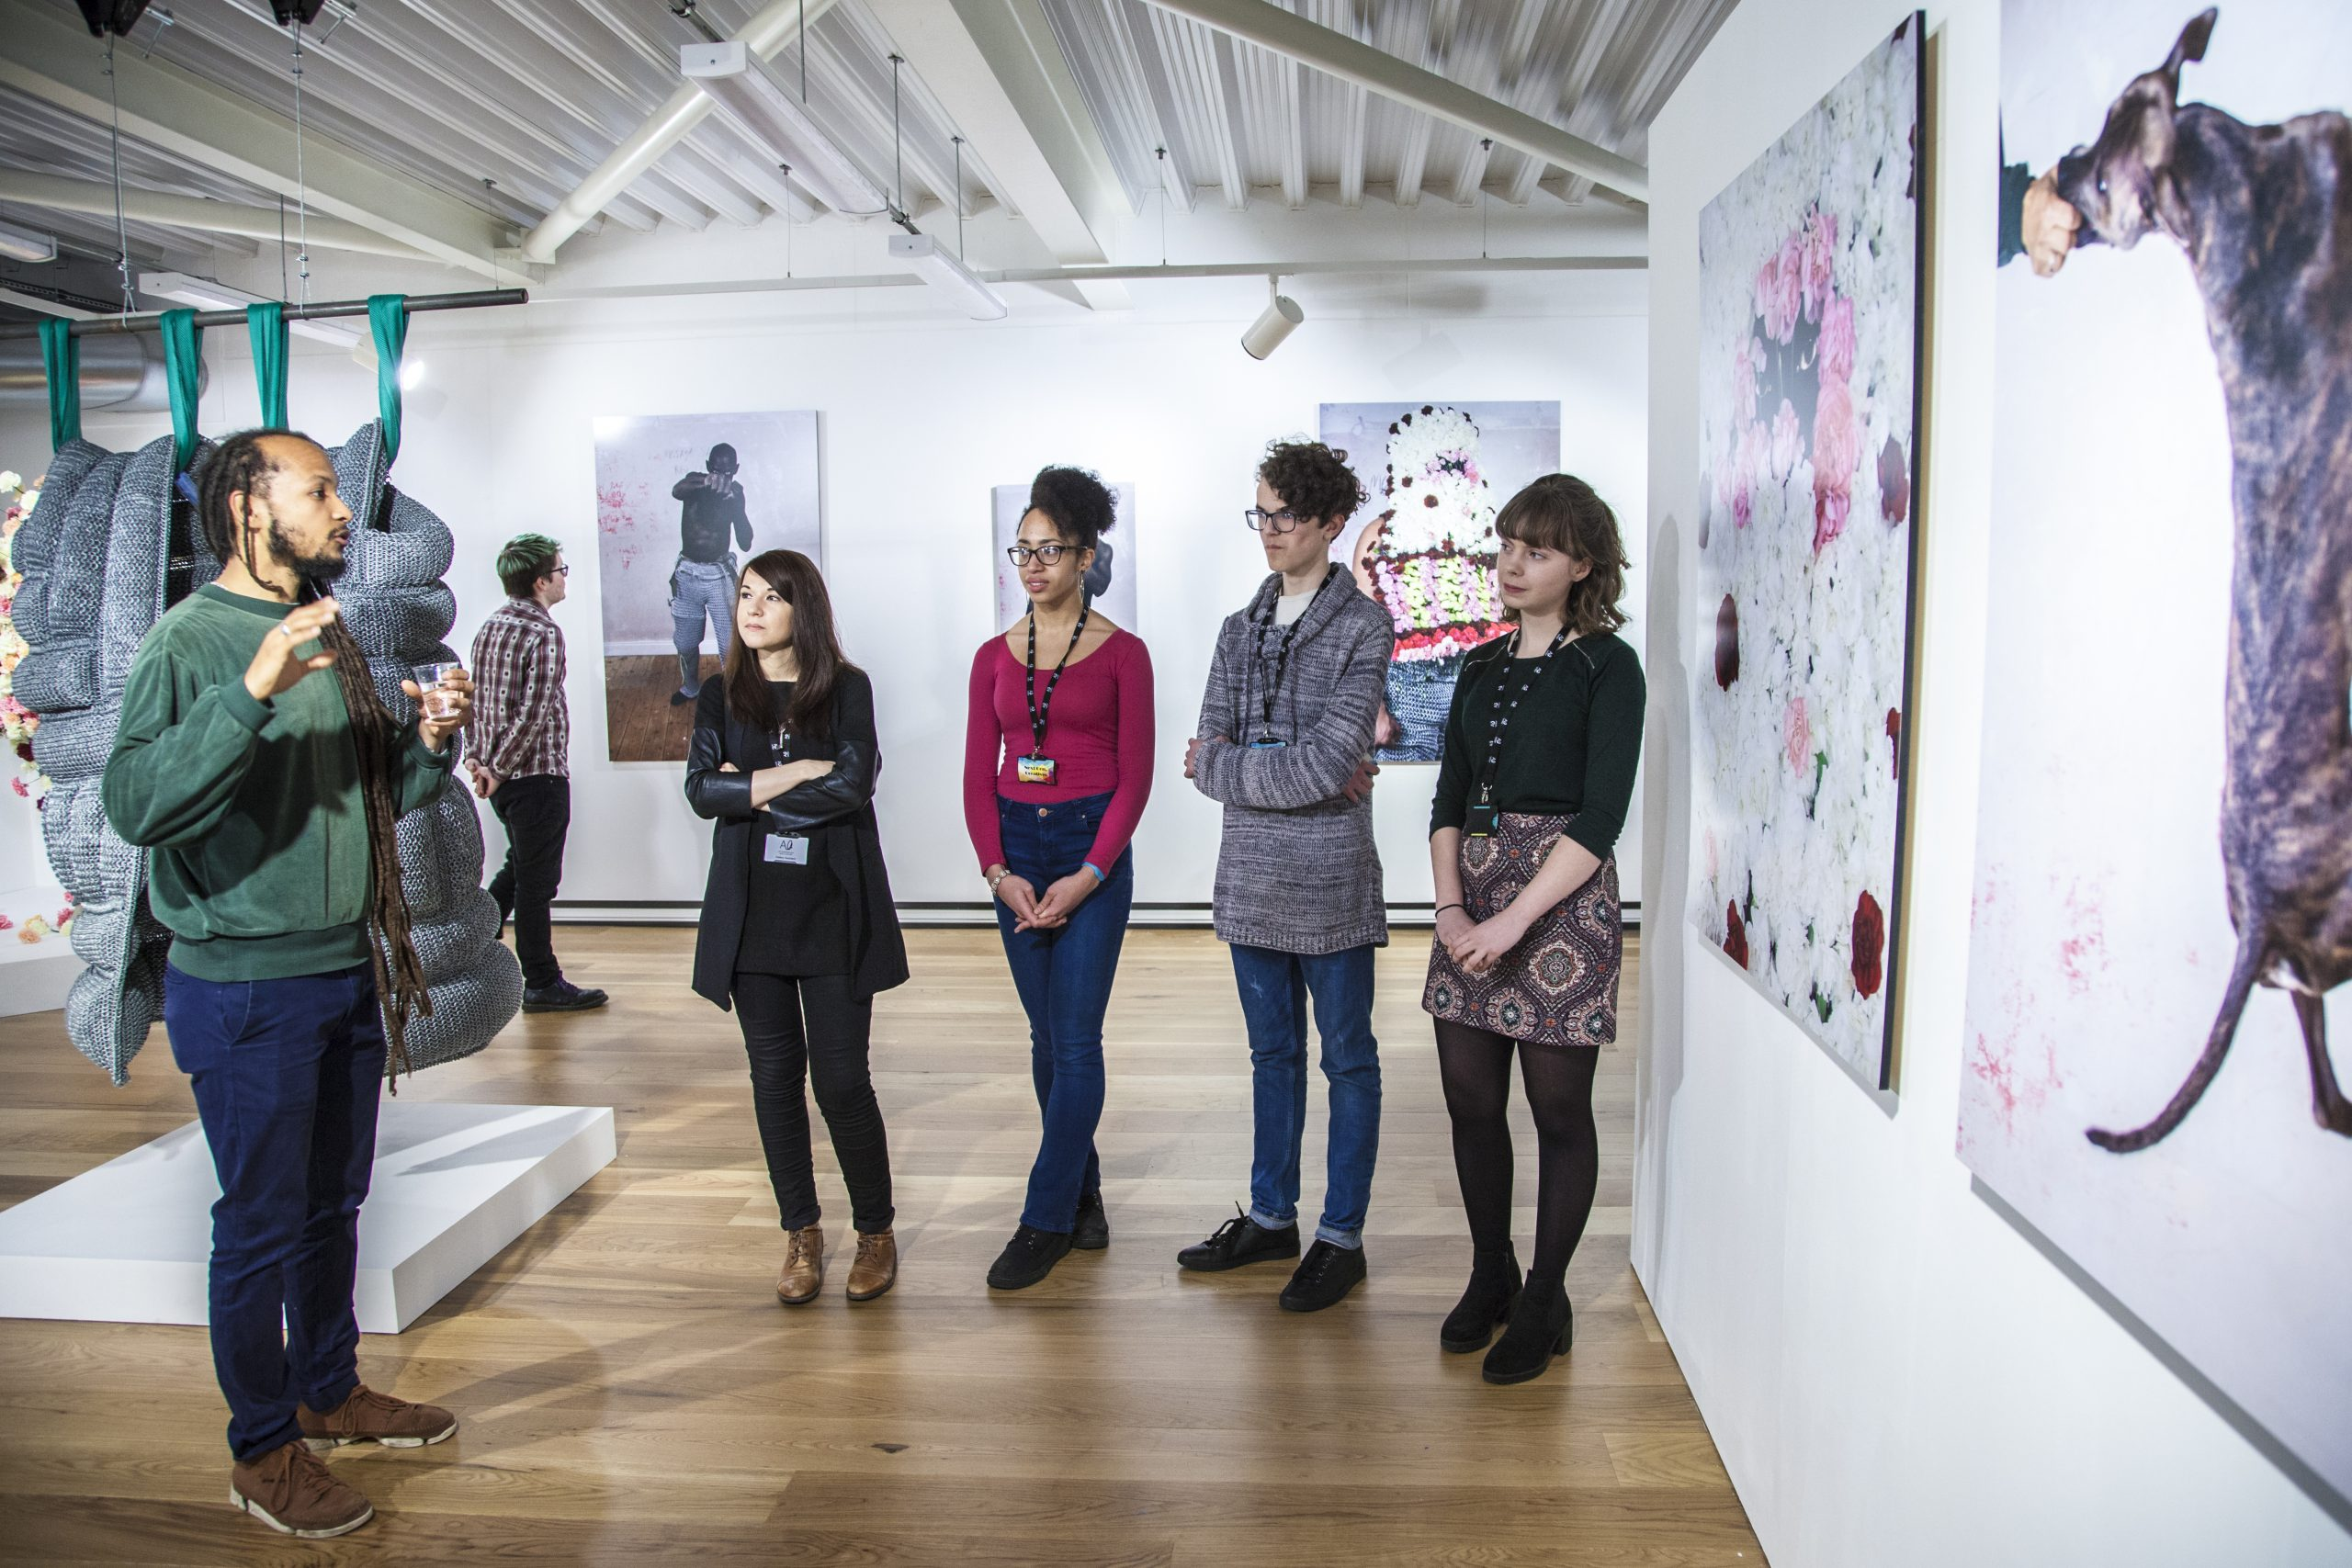 four young adults are listening to a man talk about the art covering gallery walls